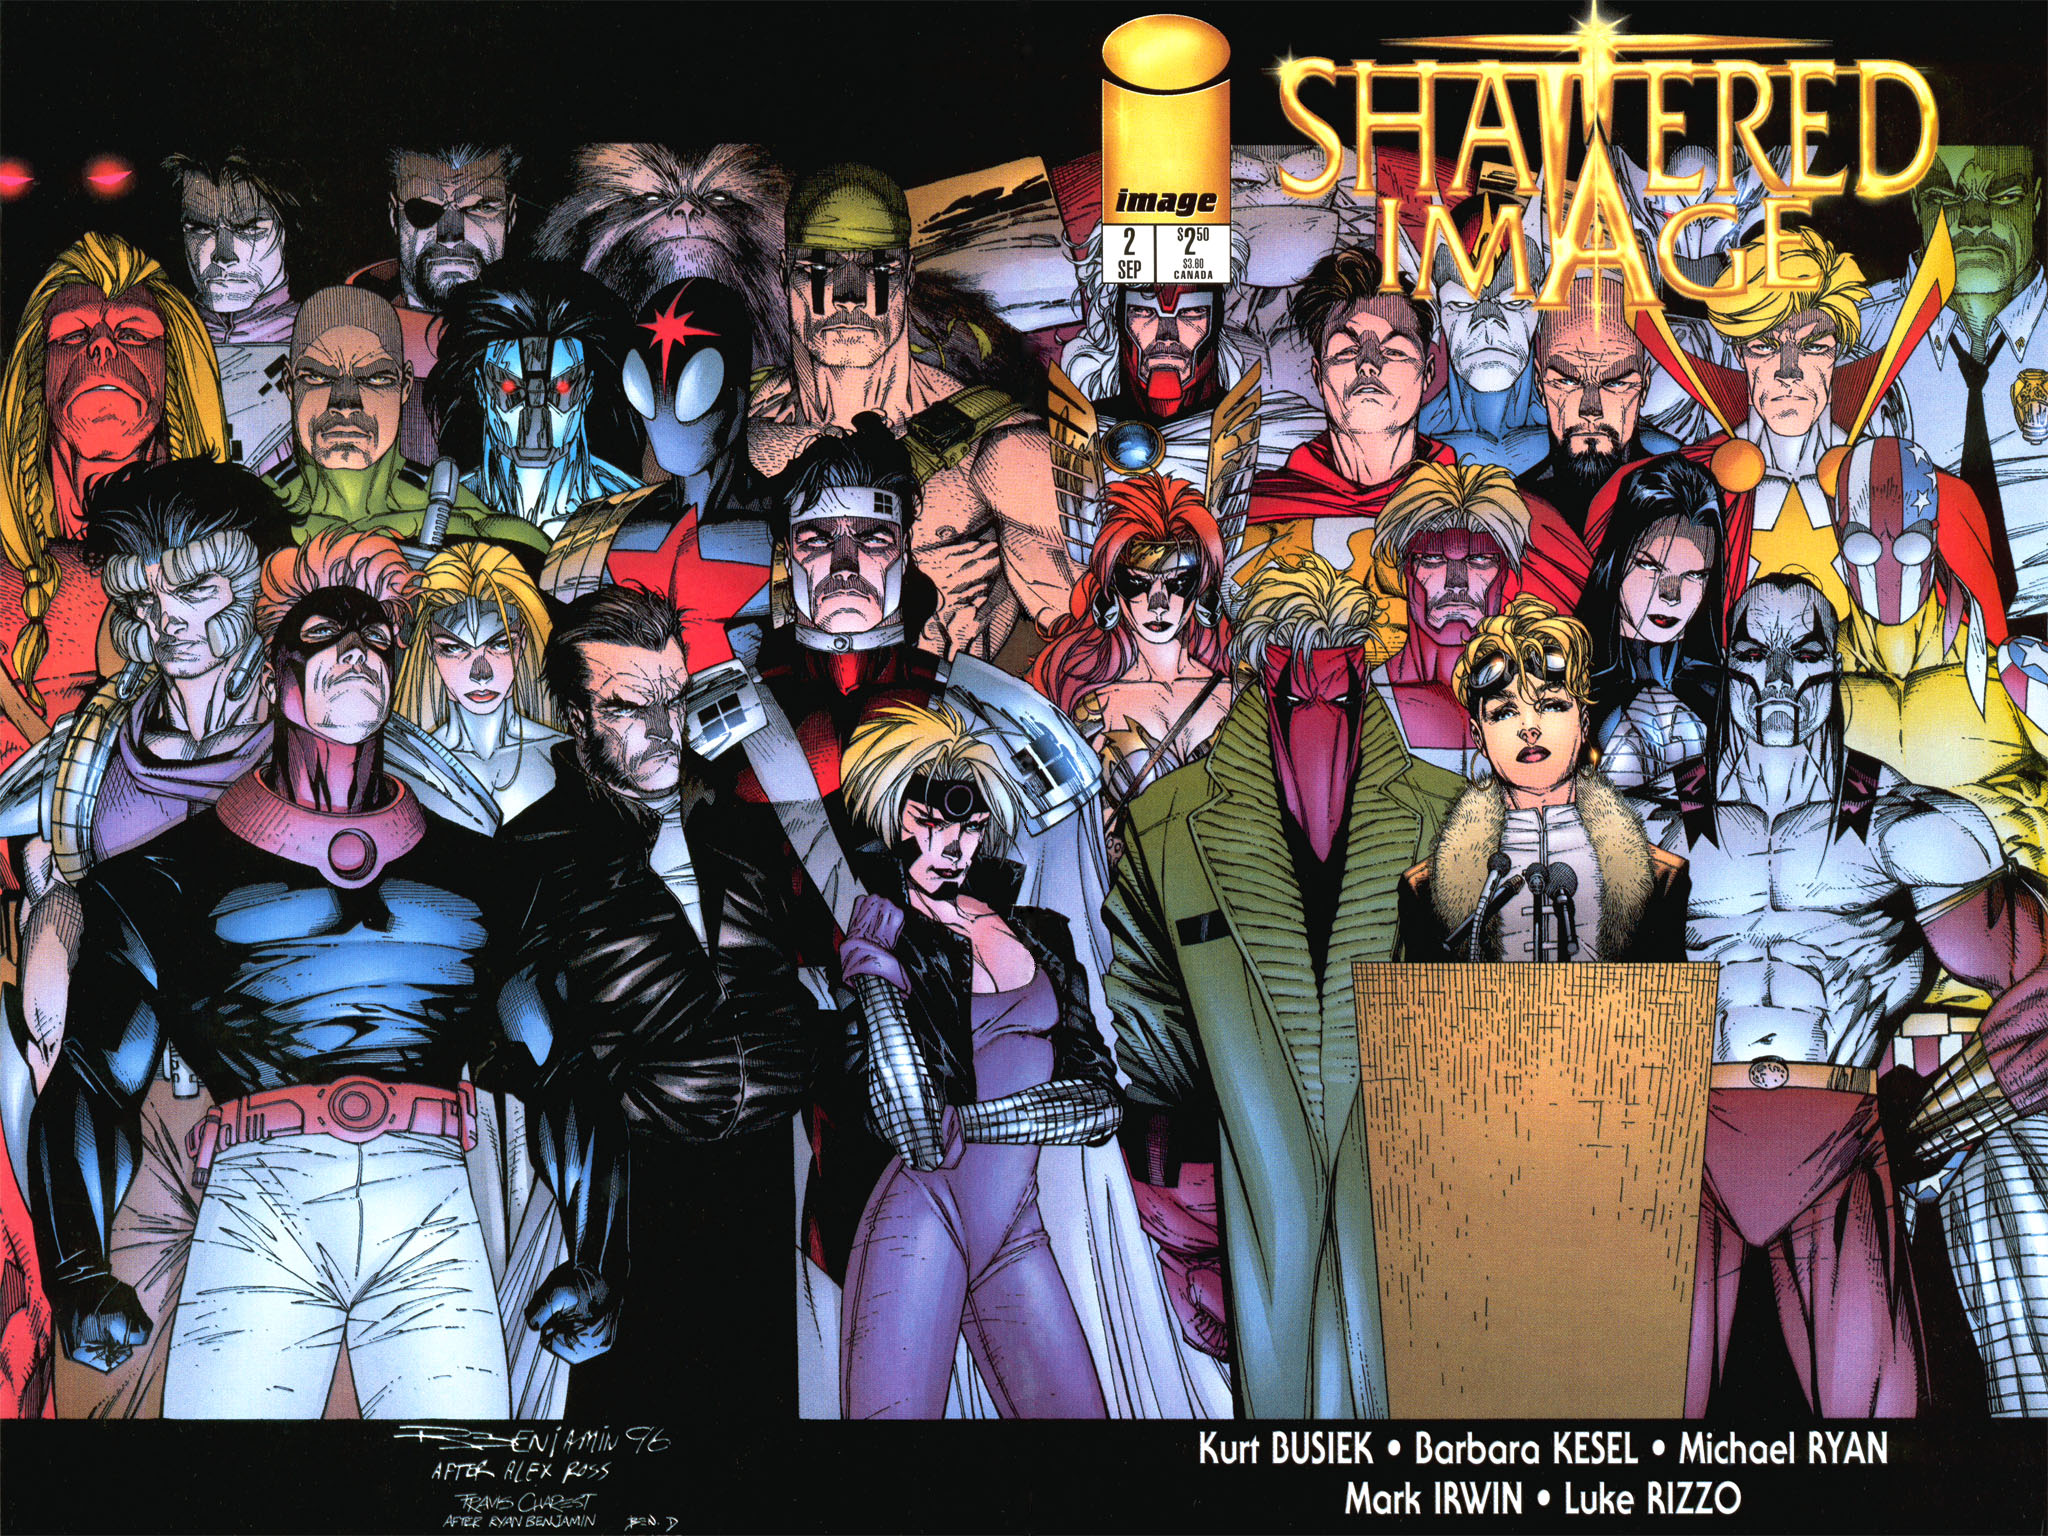 Read online Shattered Image comic -  Issue #2 - 1